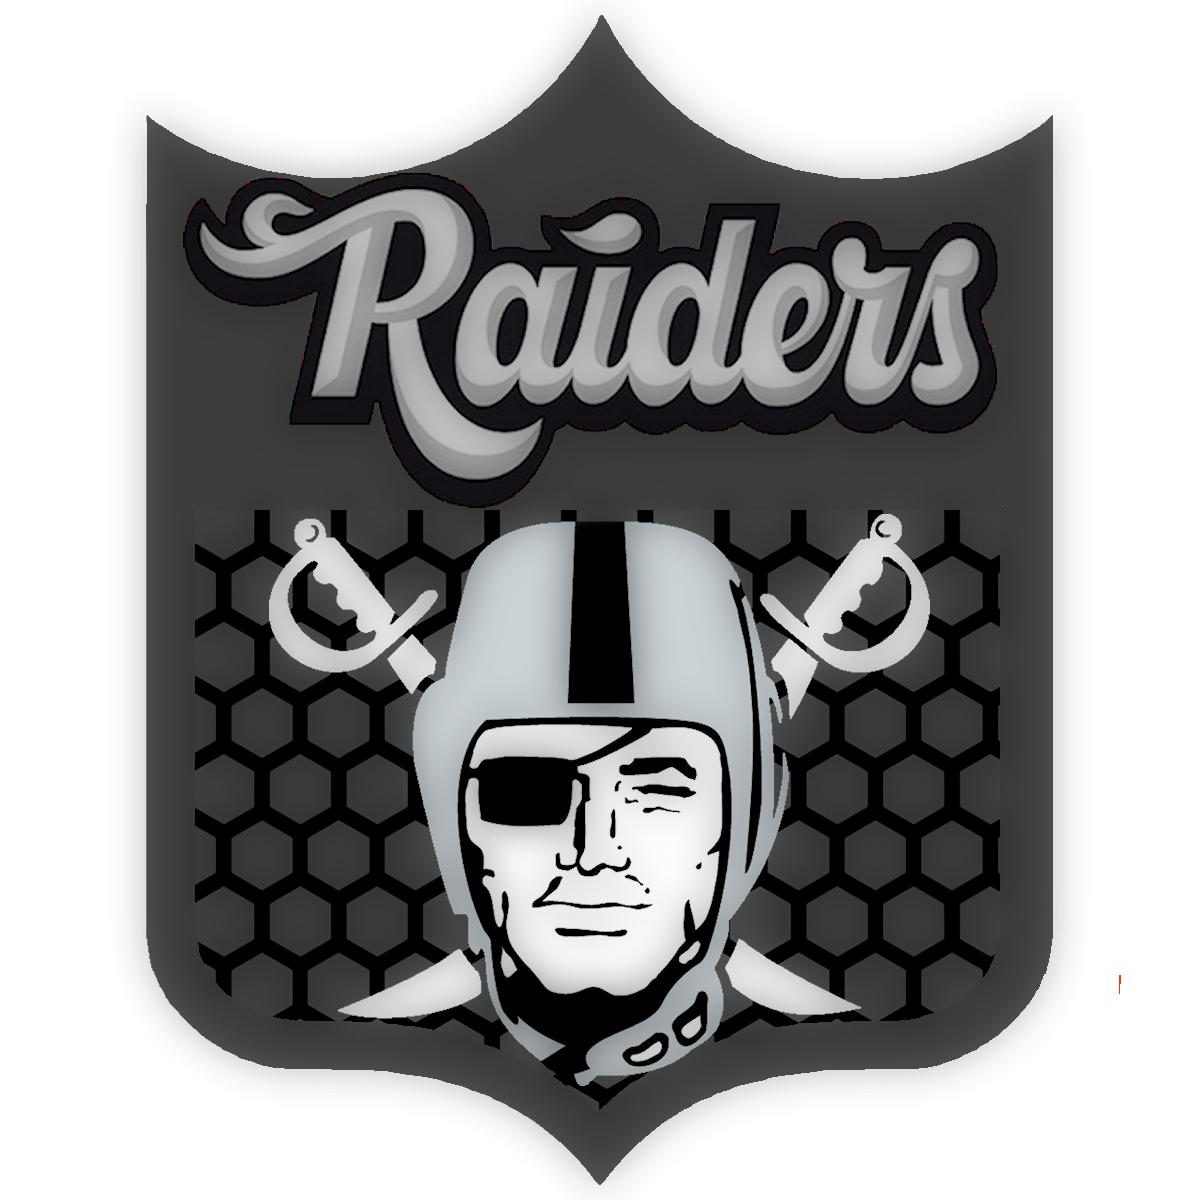 Oakland Raiders Logo Oakland raiders logo, Oakland